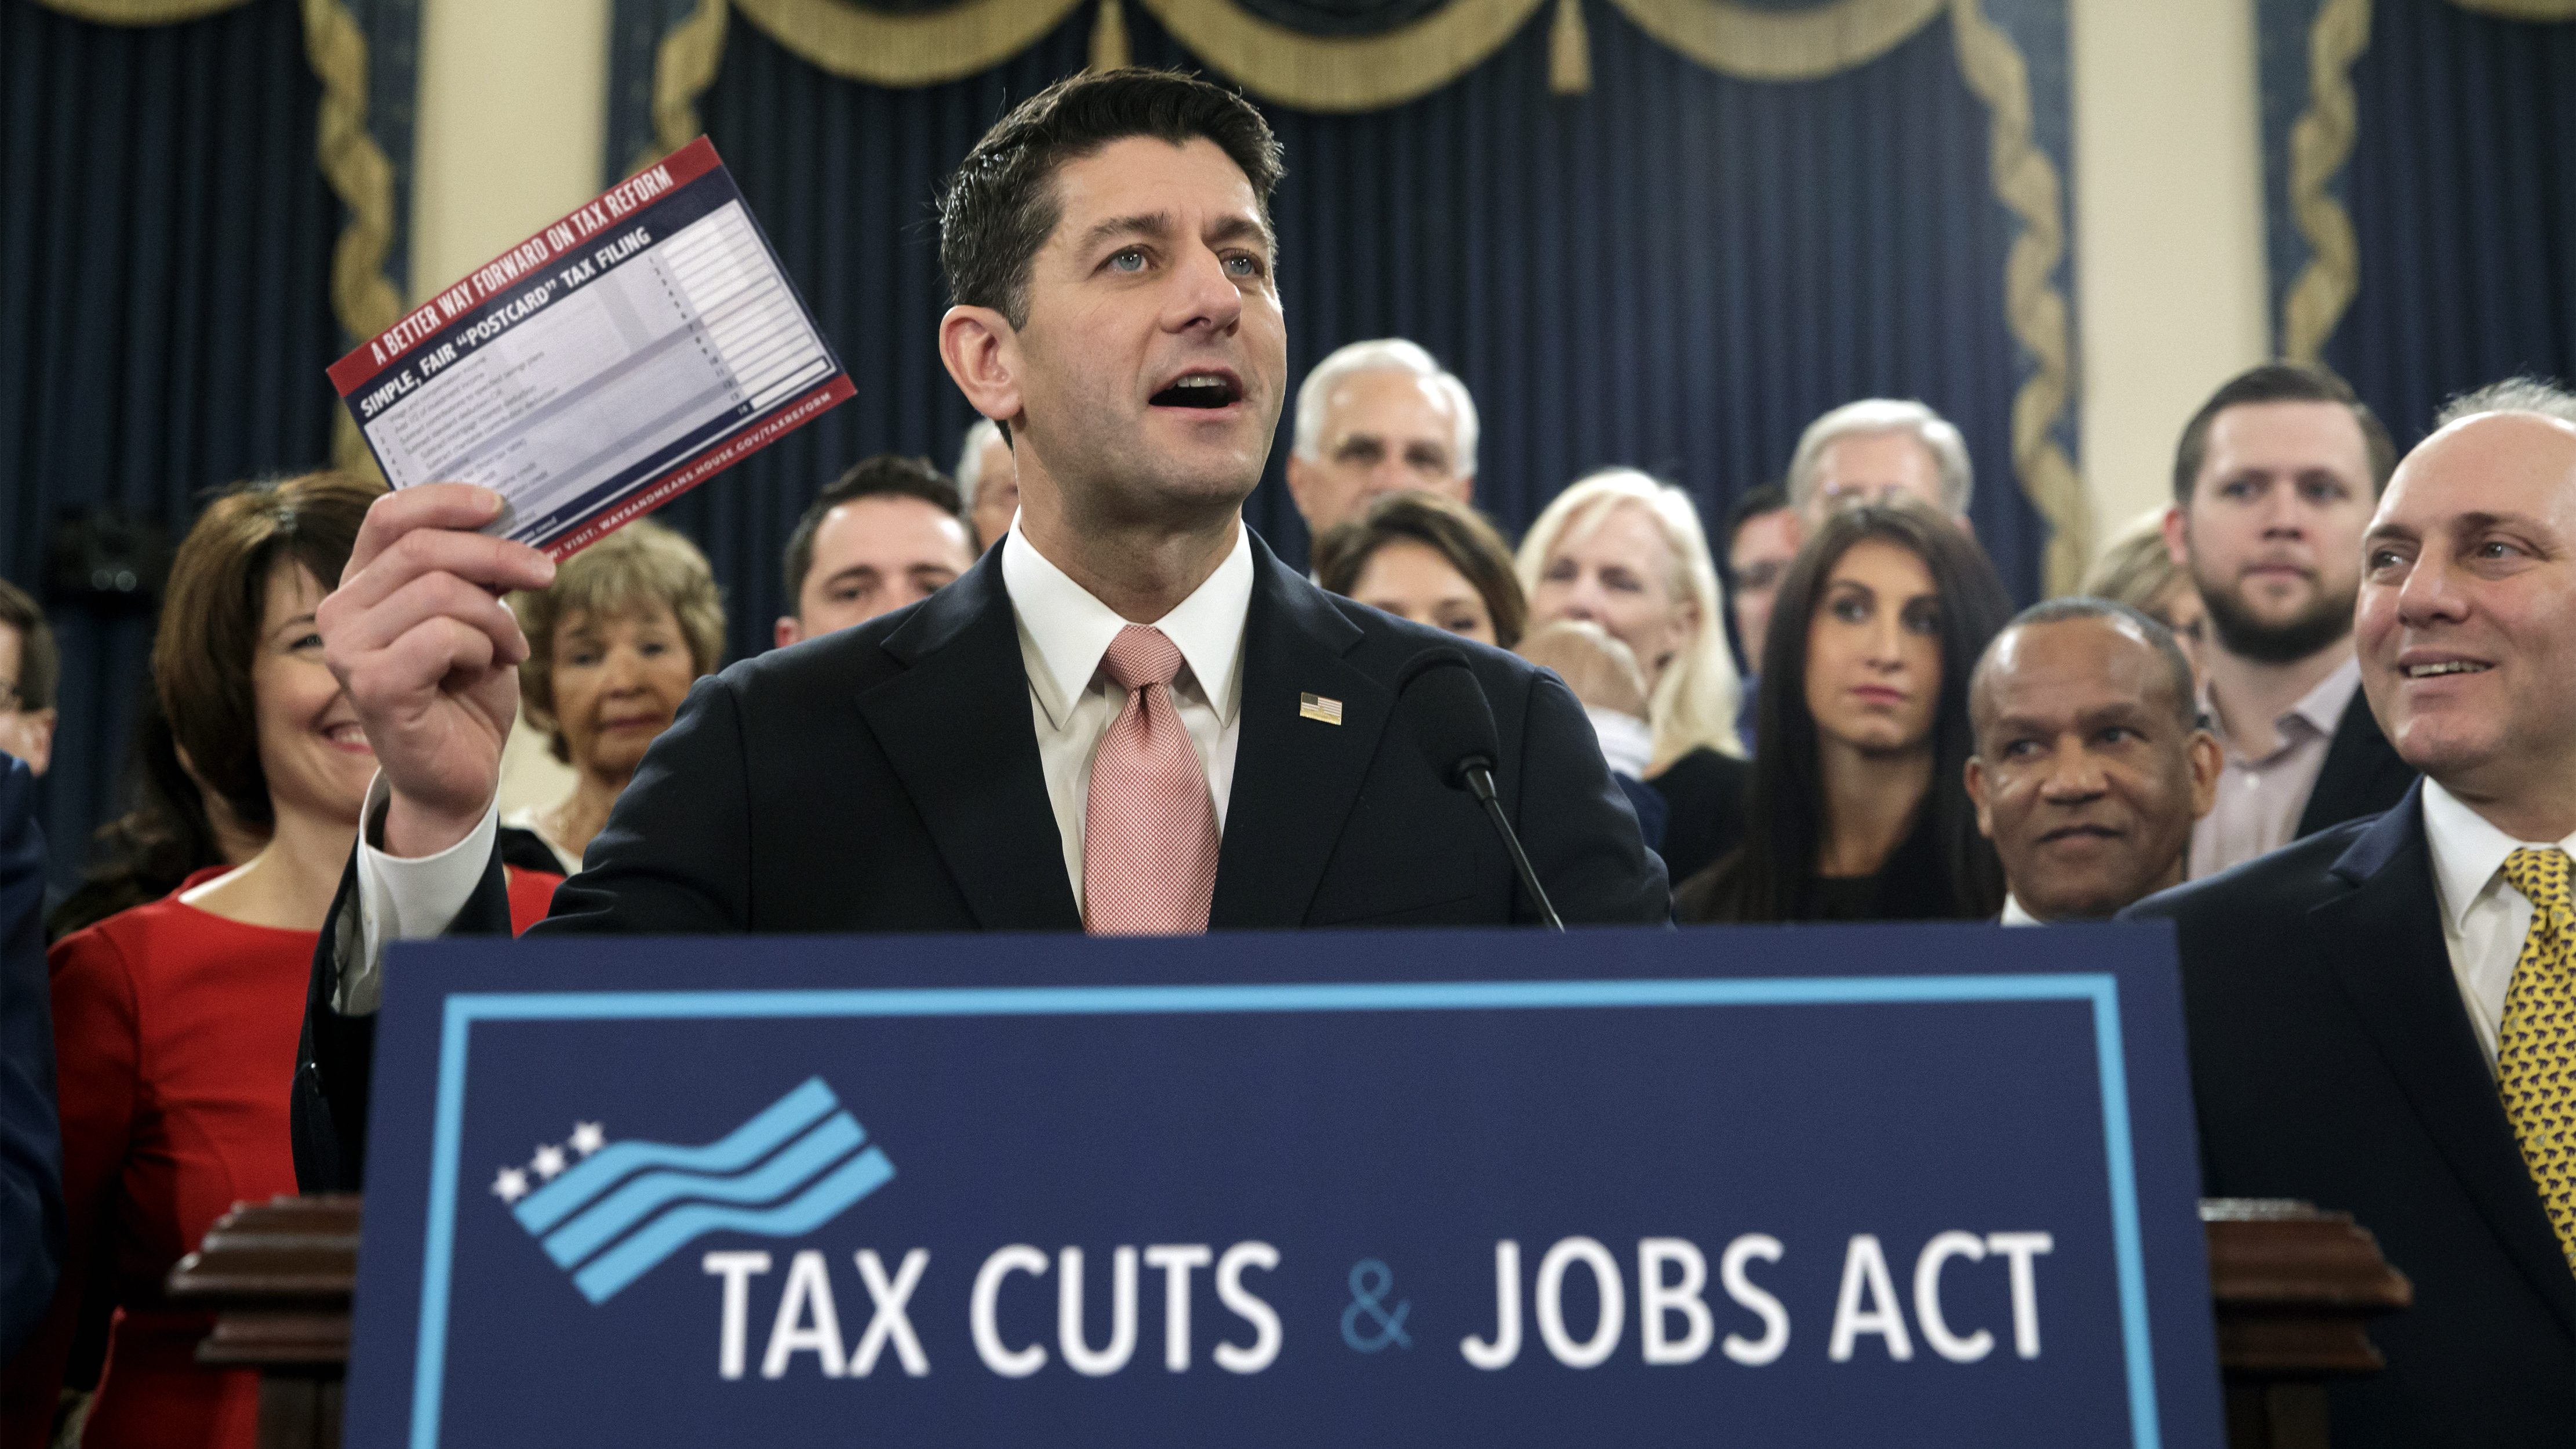 One thing the Republican tax plan won't cut: The 100-page instruction manual